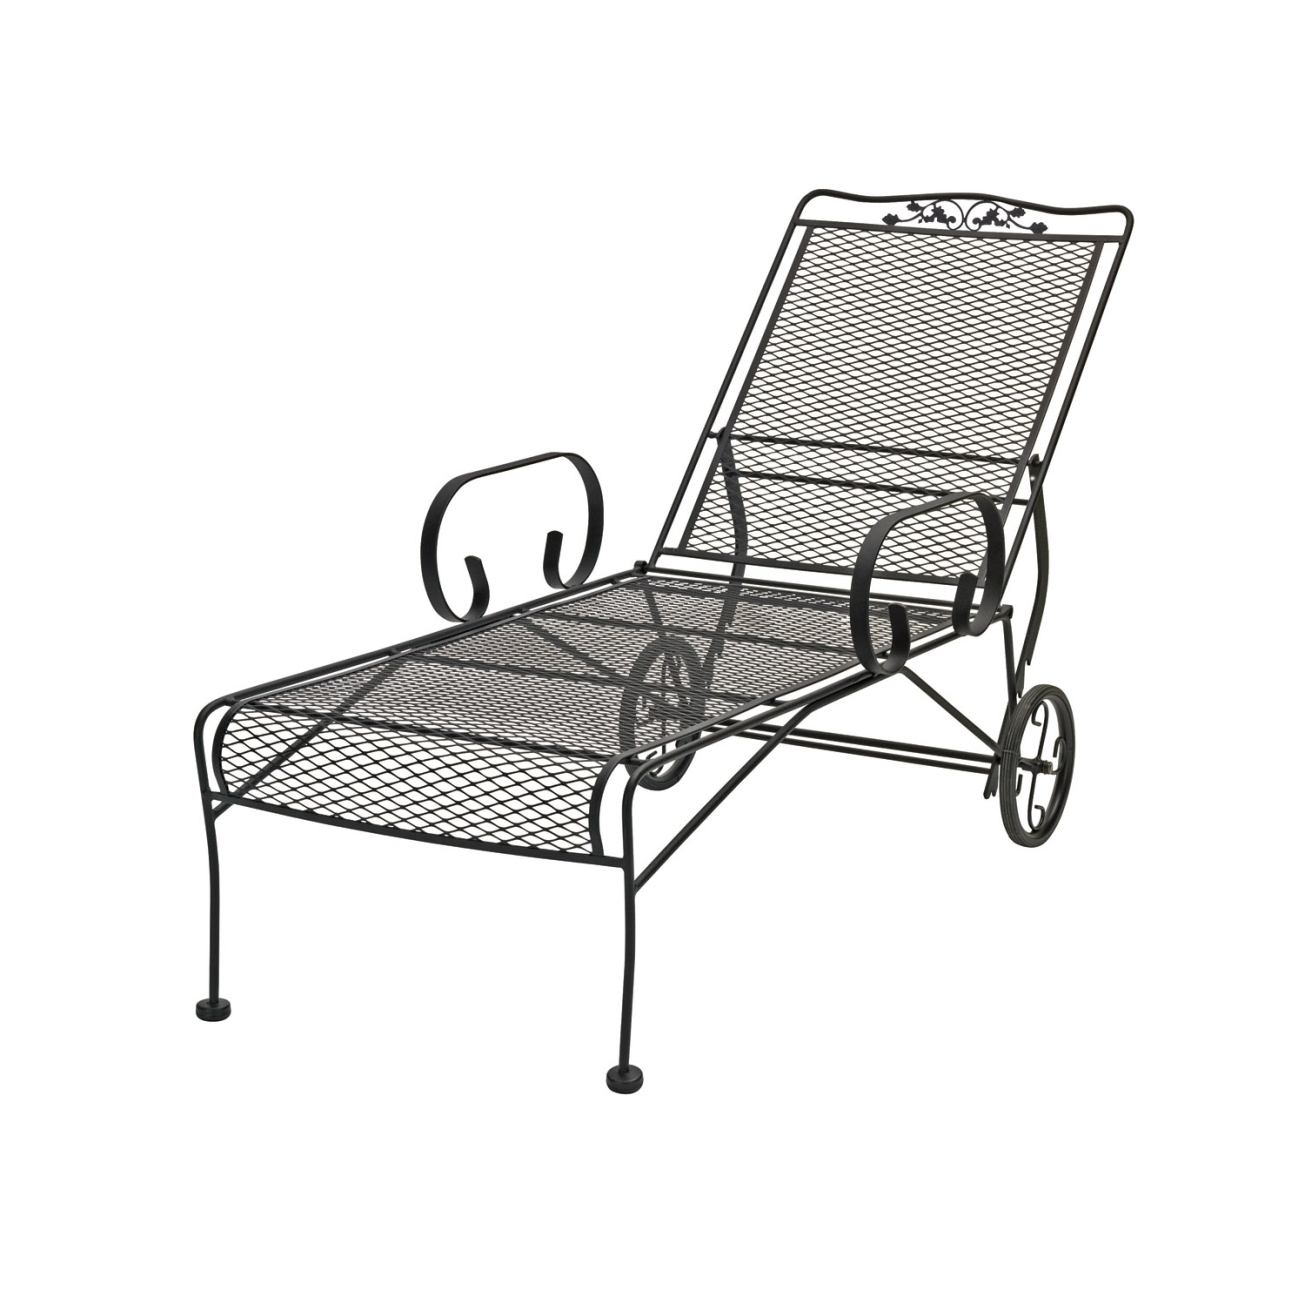 Lounge Chair : Best Garden Furniture Plastic Patio Chairs Resin With Regard To 2017 Lightweight Chaise Lounge Chairs (View 11 of 15)